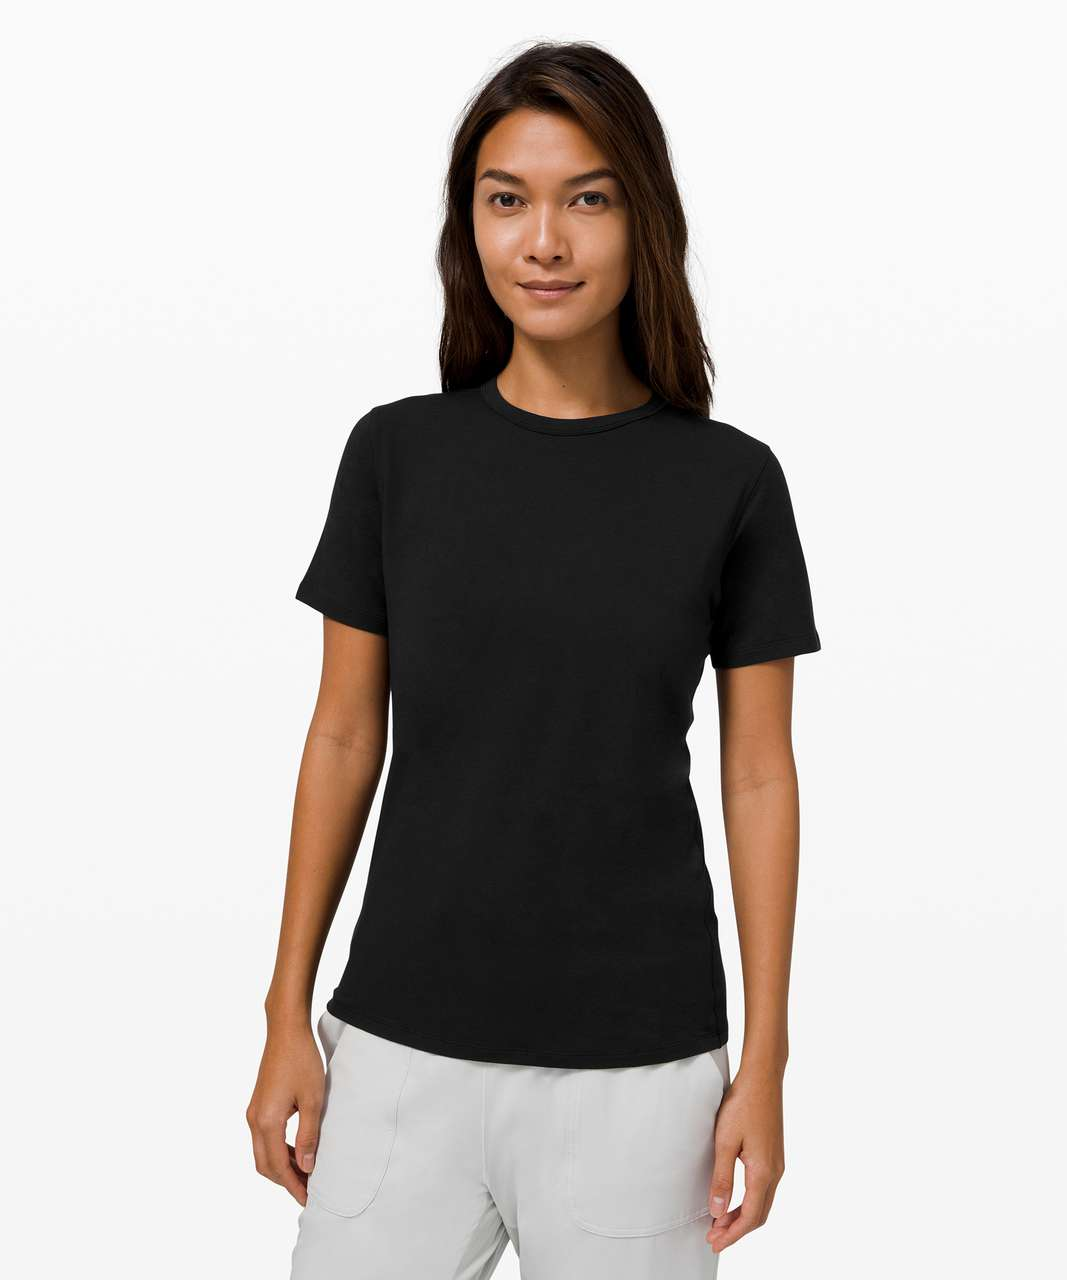 Lululemon Hold Tight Short Sleeve *Wool - Black